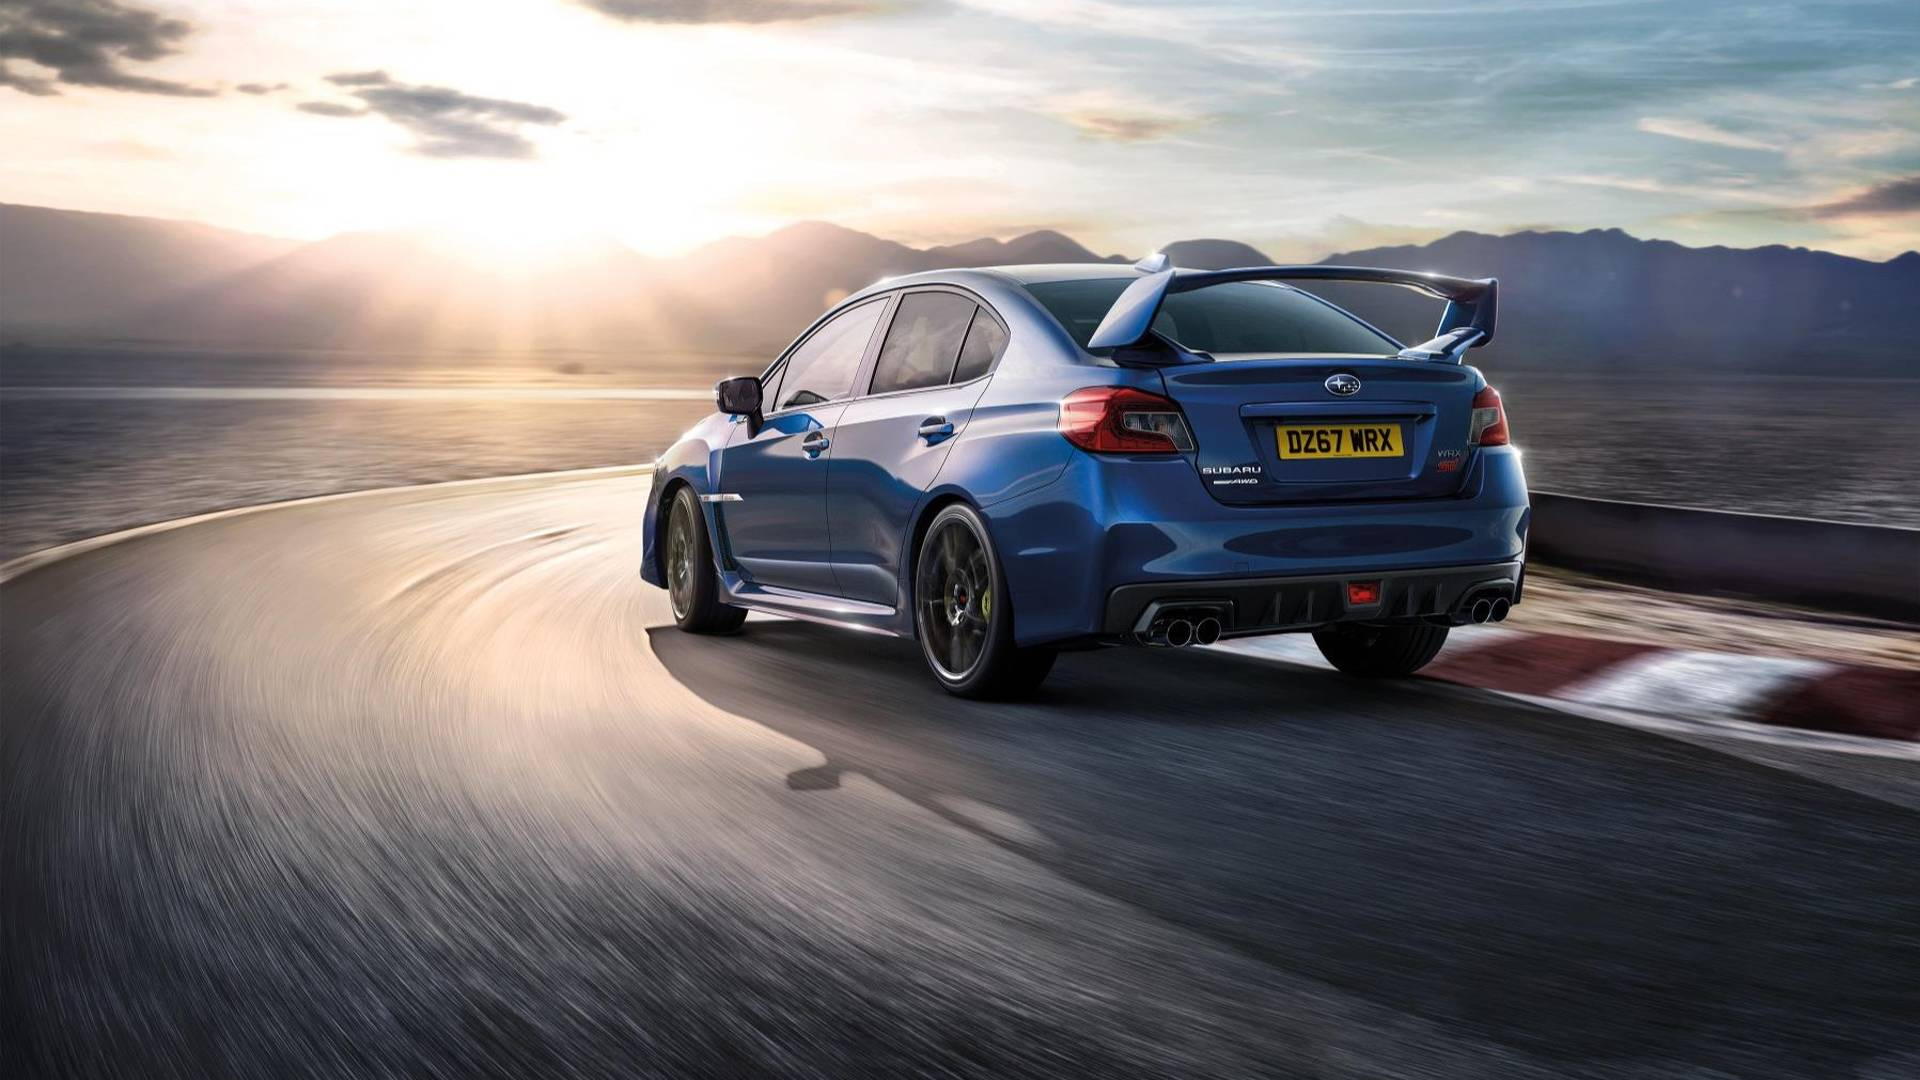 Subaru Phases Out Wrx Sti From Uk Lineup With Final